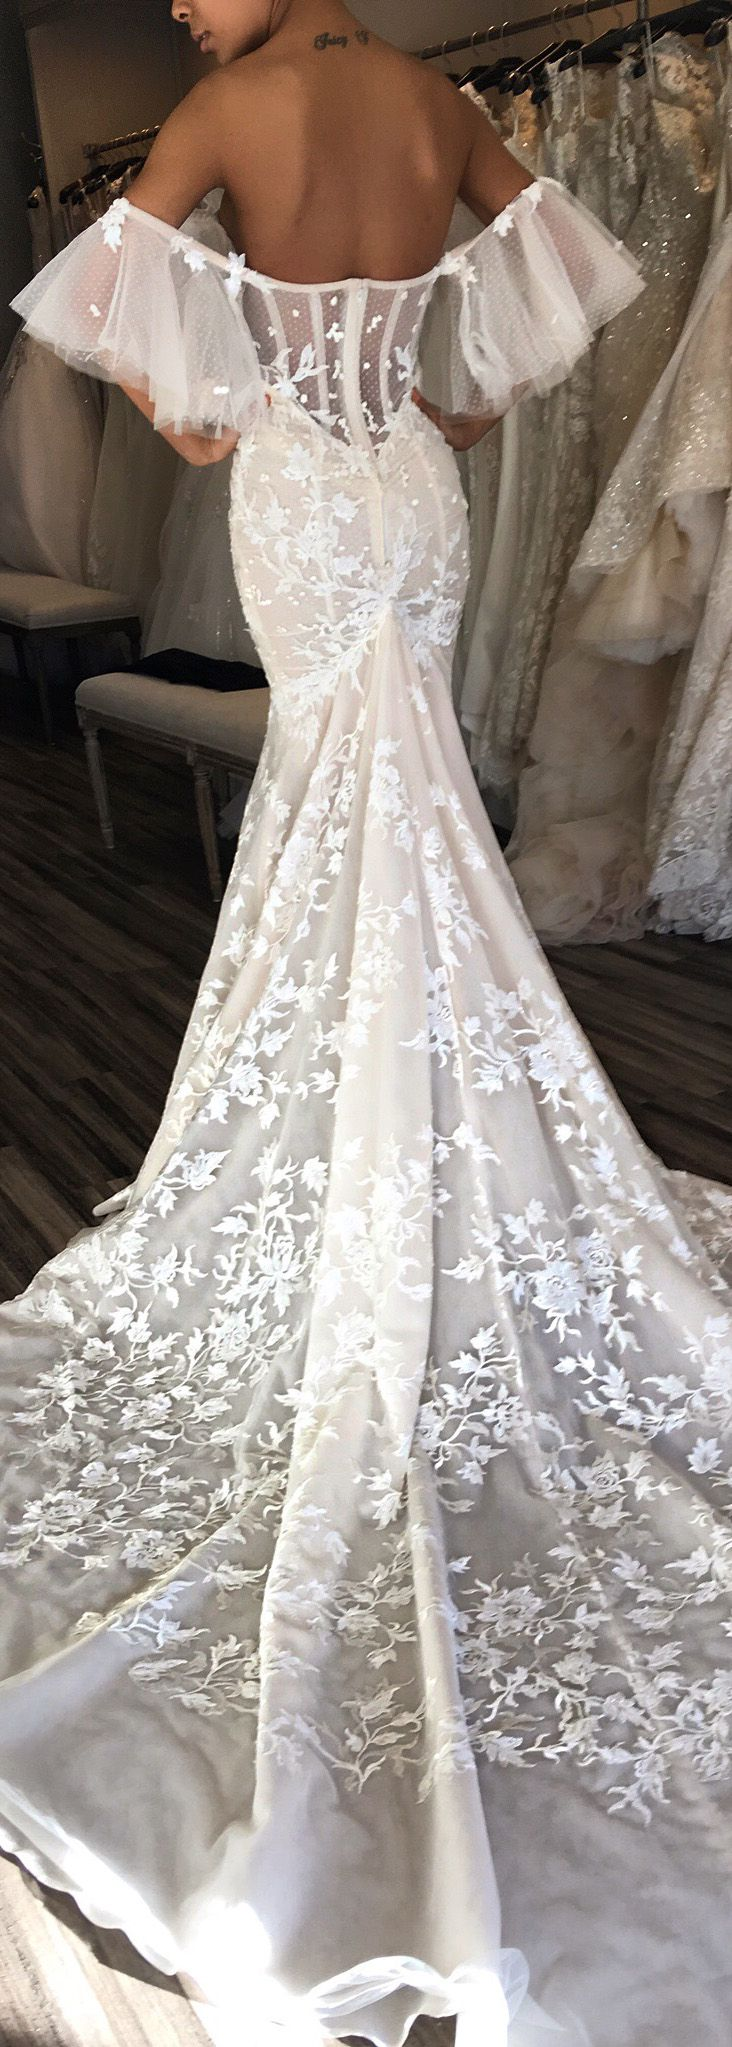 Inspiration de votre future Robe de Mariage photo-maleya.com Choisir son style de robe de mariée #bride #dress #dresses Photographe Montréal Québec Canada |@photomaleya l $$$ Price on the website